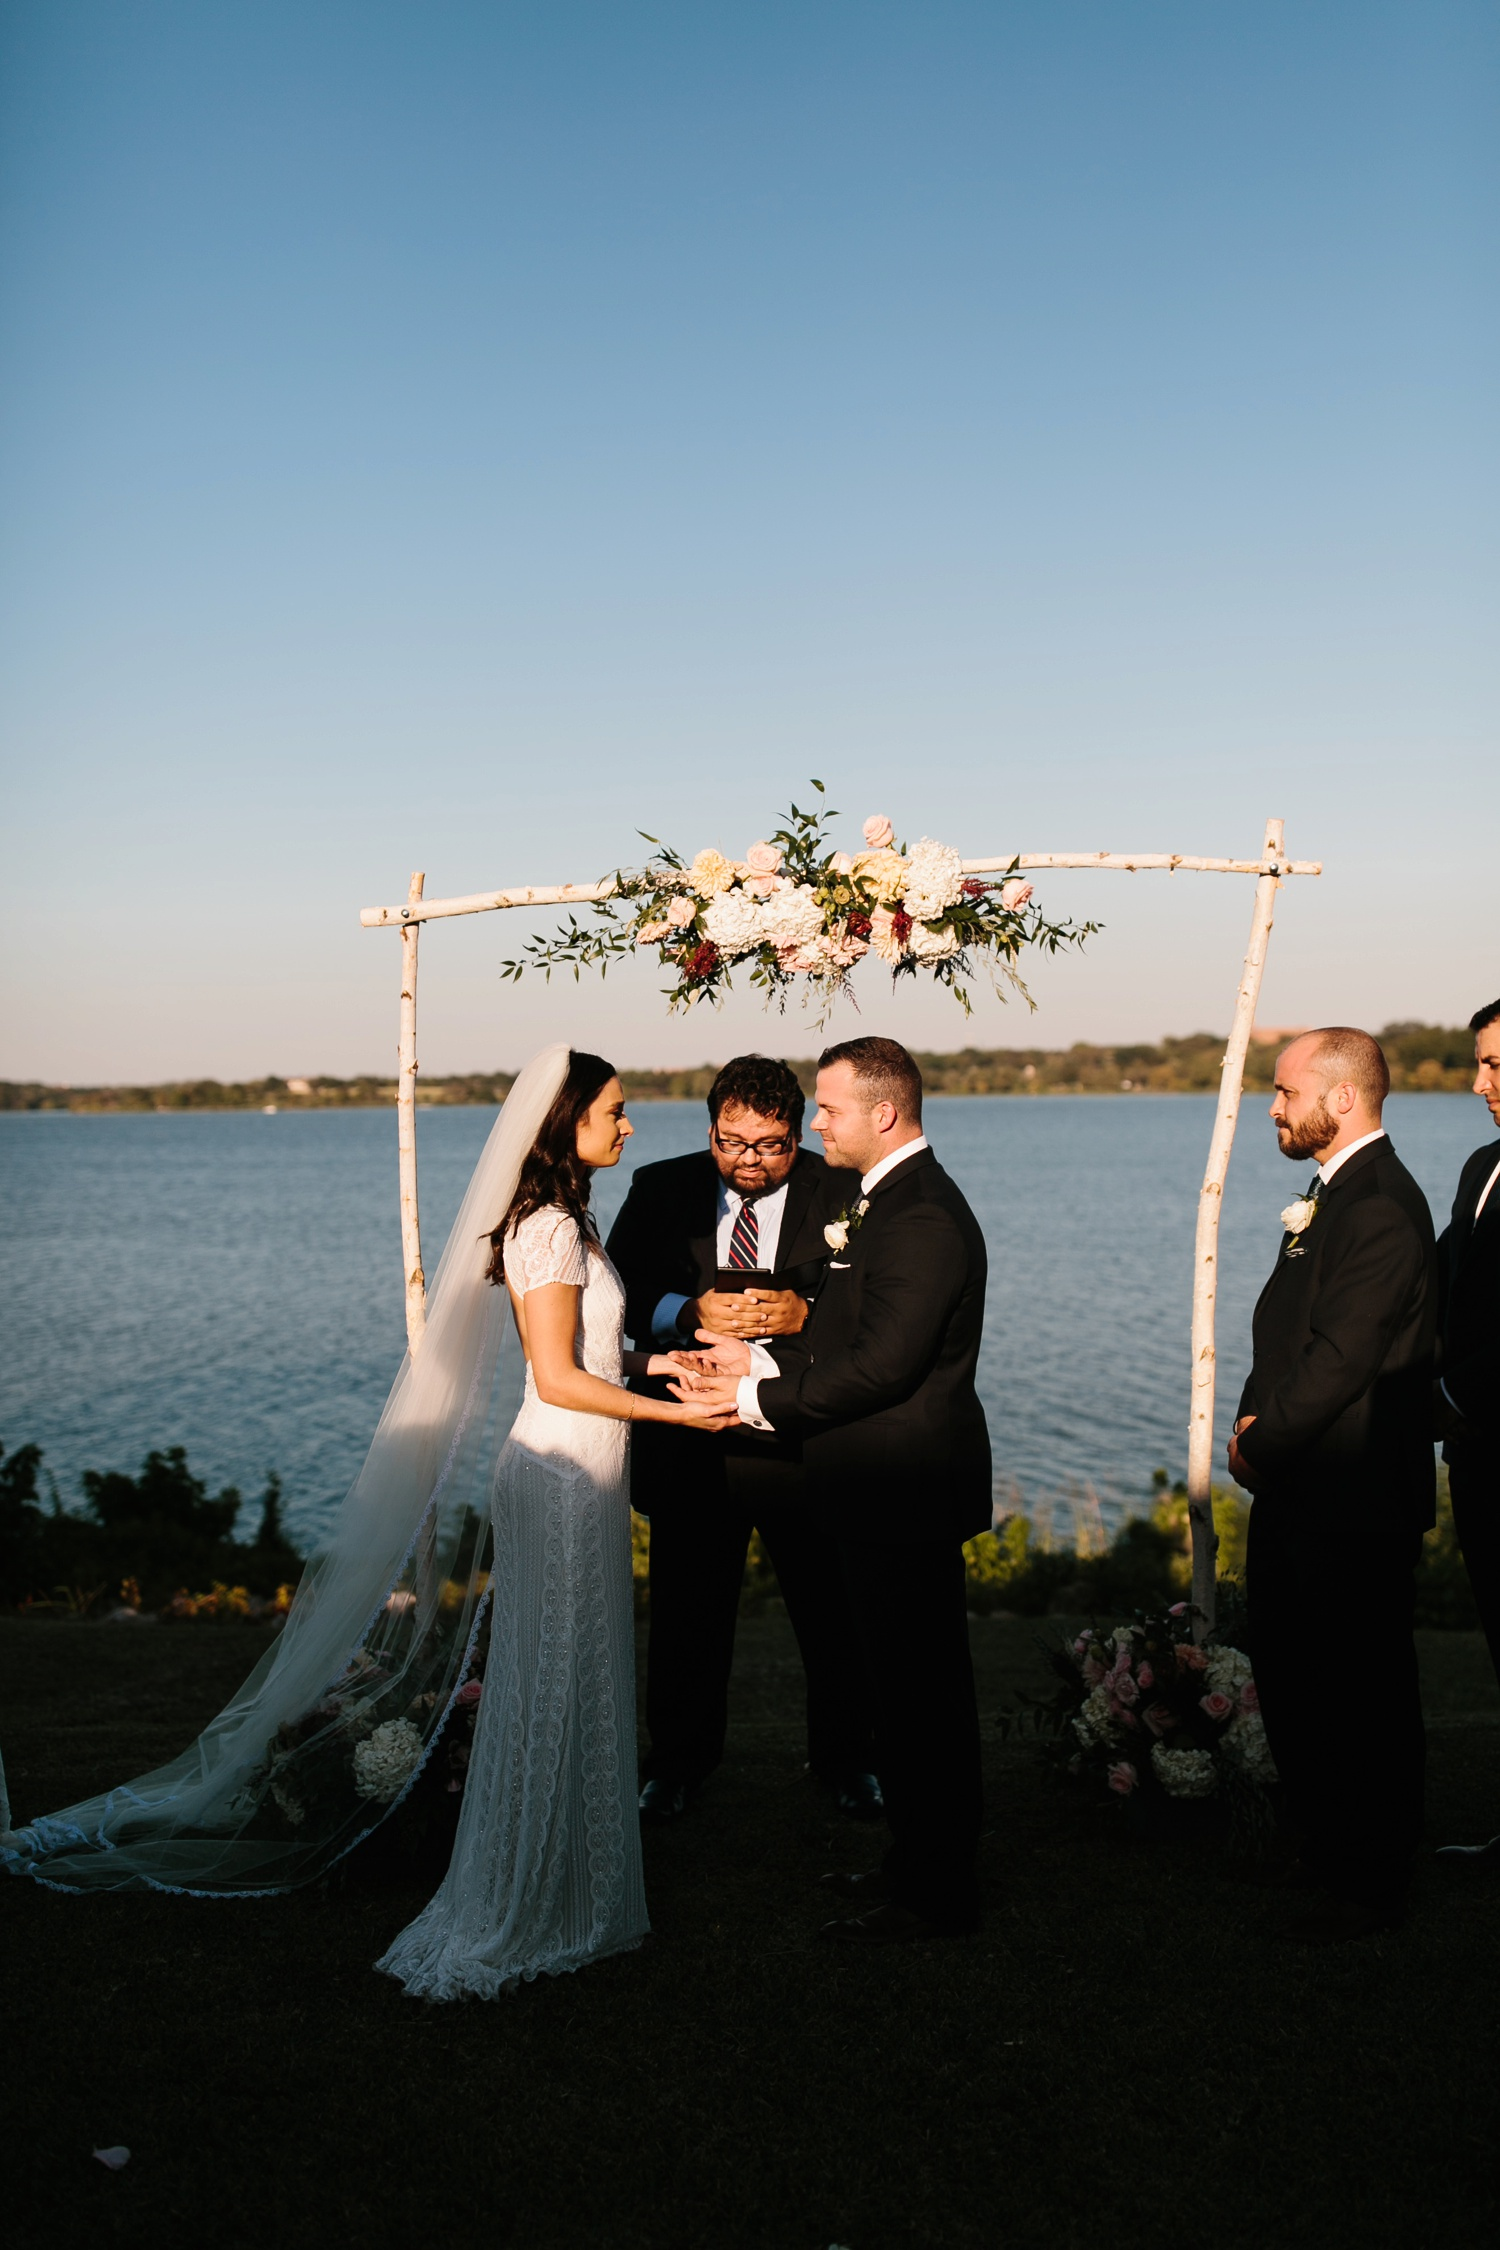 Kadee + Tyler | a raw, emotional wedding at the Filter Building on White Rock Lake in Dallas, TX by North Texas Wedding Photographer, Rachel Meagan Photography 132